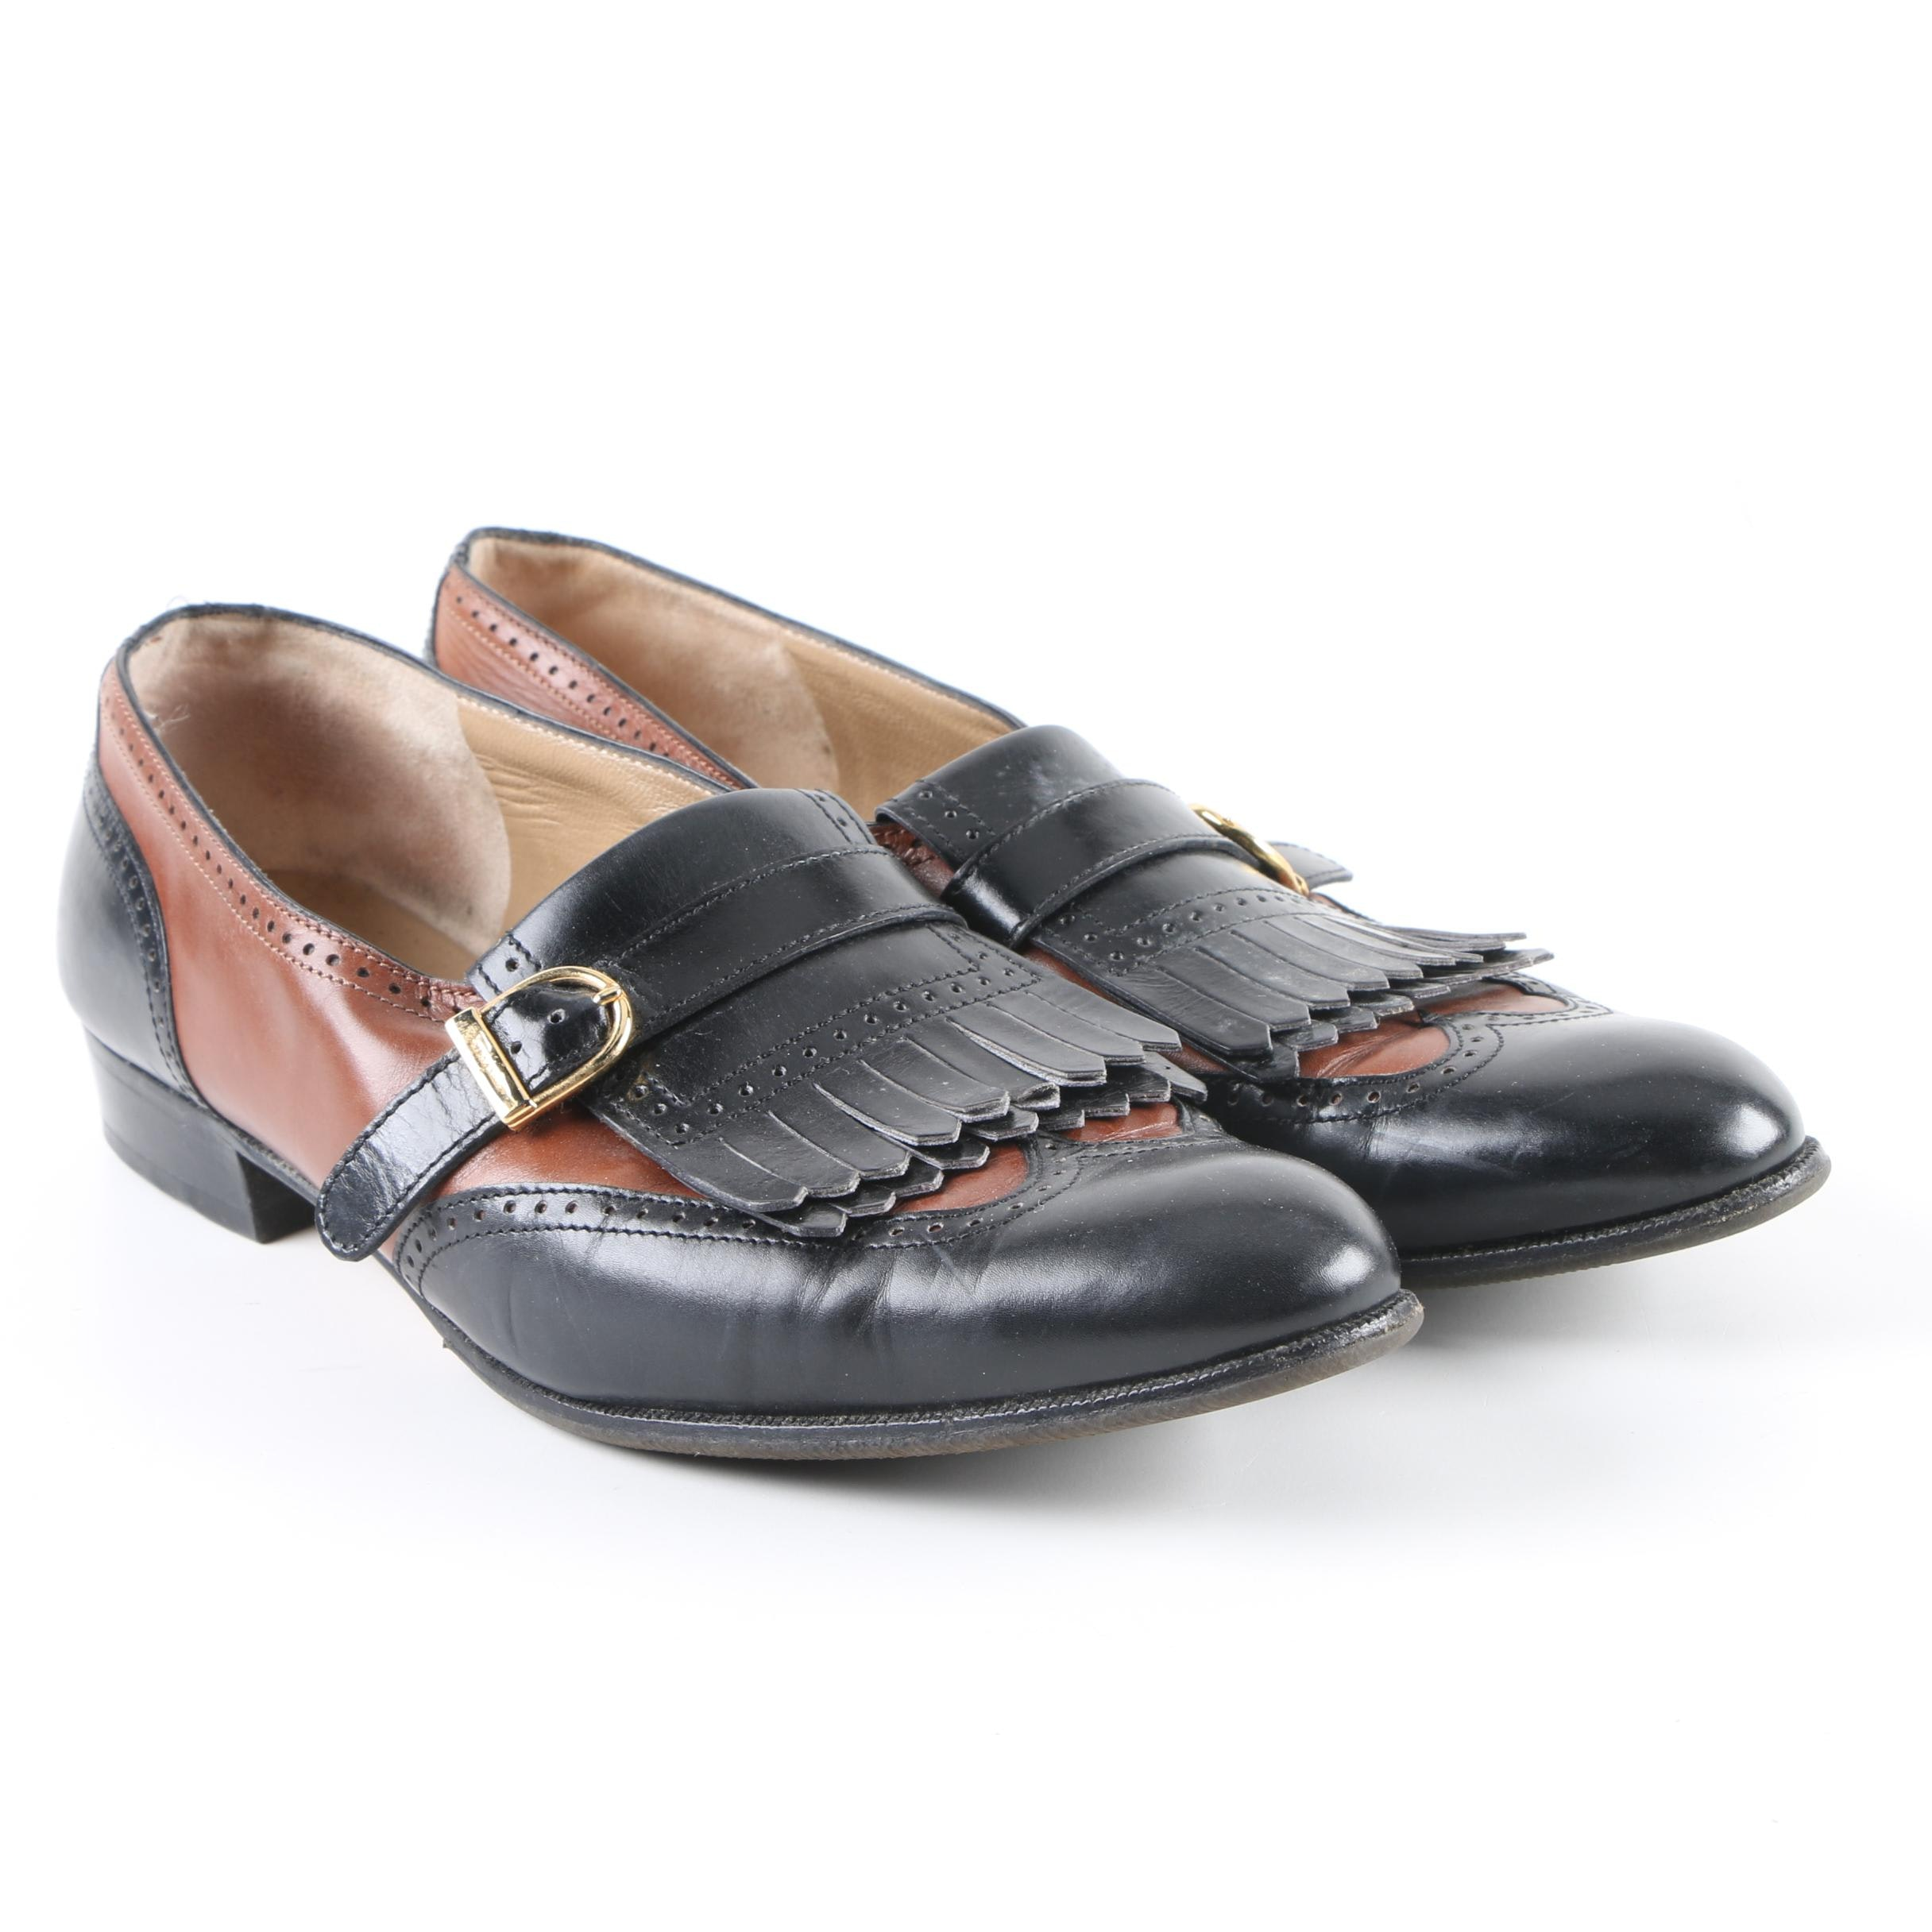 Women's Salvatore Ferragamo Black and Brown Leather Wingtip Loafers